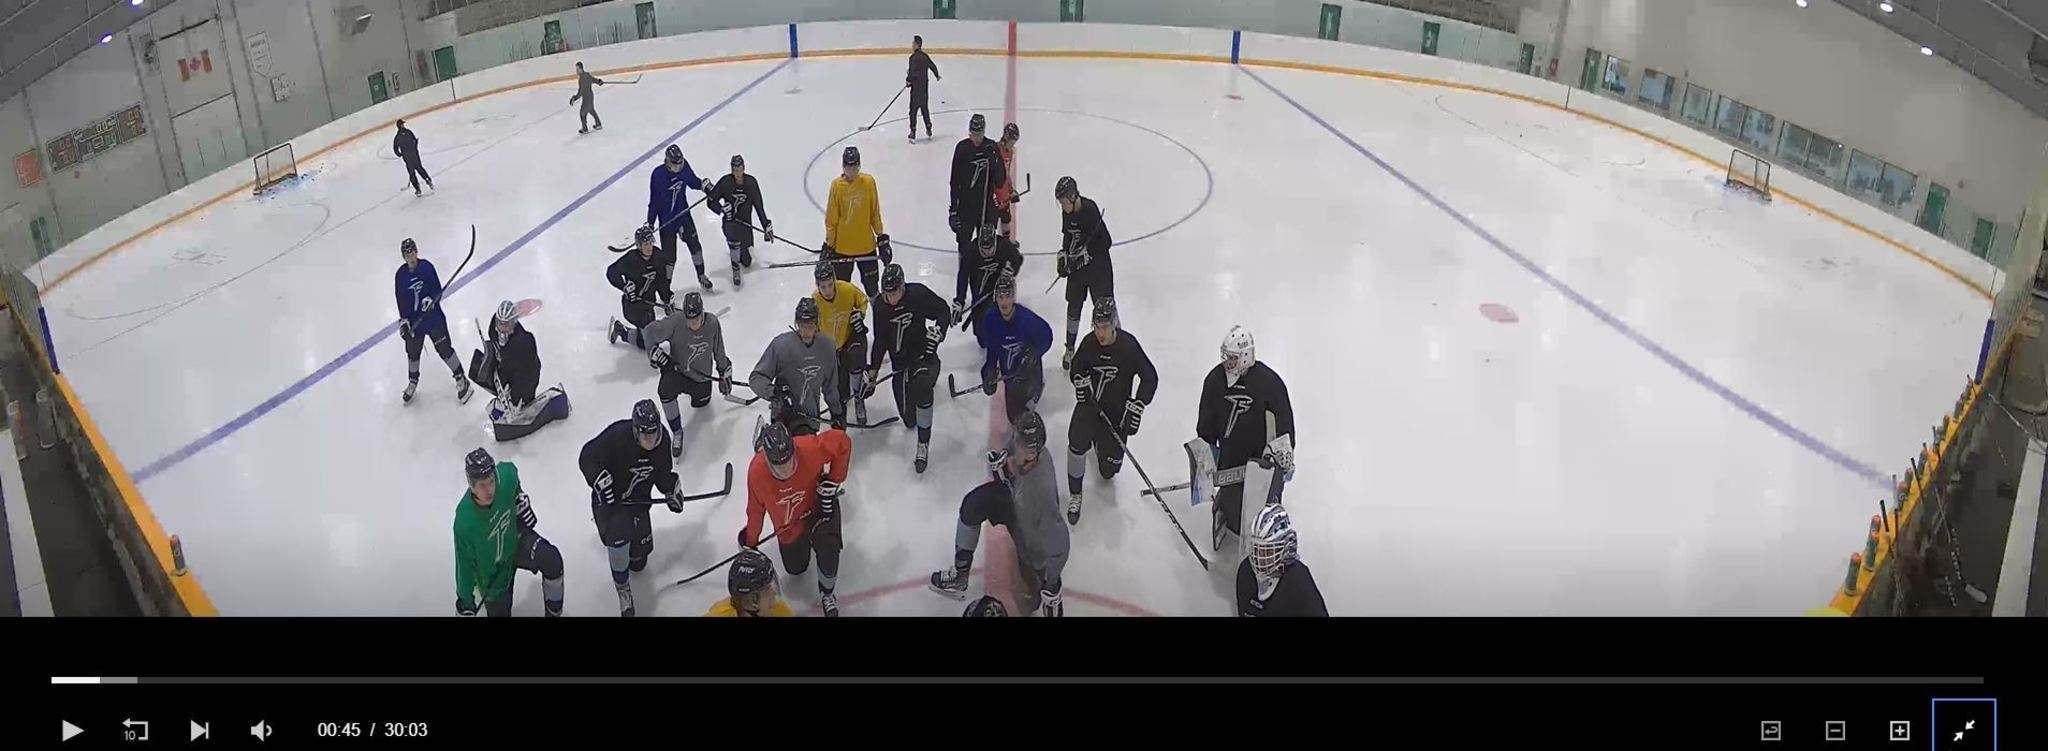 LiveBarn.com</p><p>Time-stamped Sunova Centre camera footage from Monday afternoon shows Winnipeg Freeze players on the ice in the Warren, MB arena.</p>